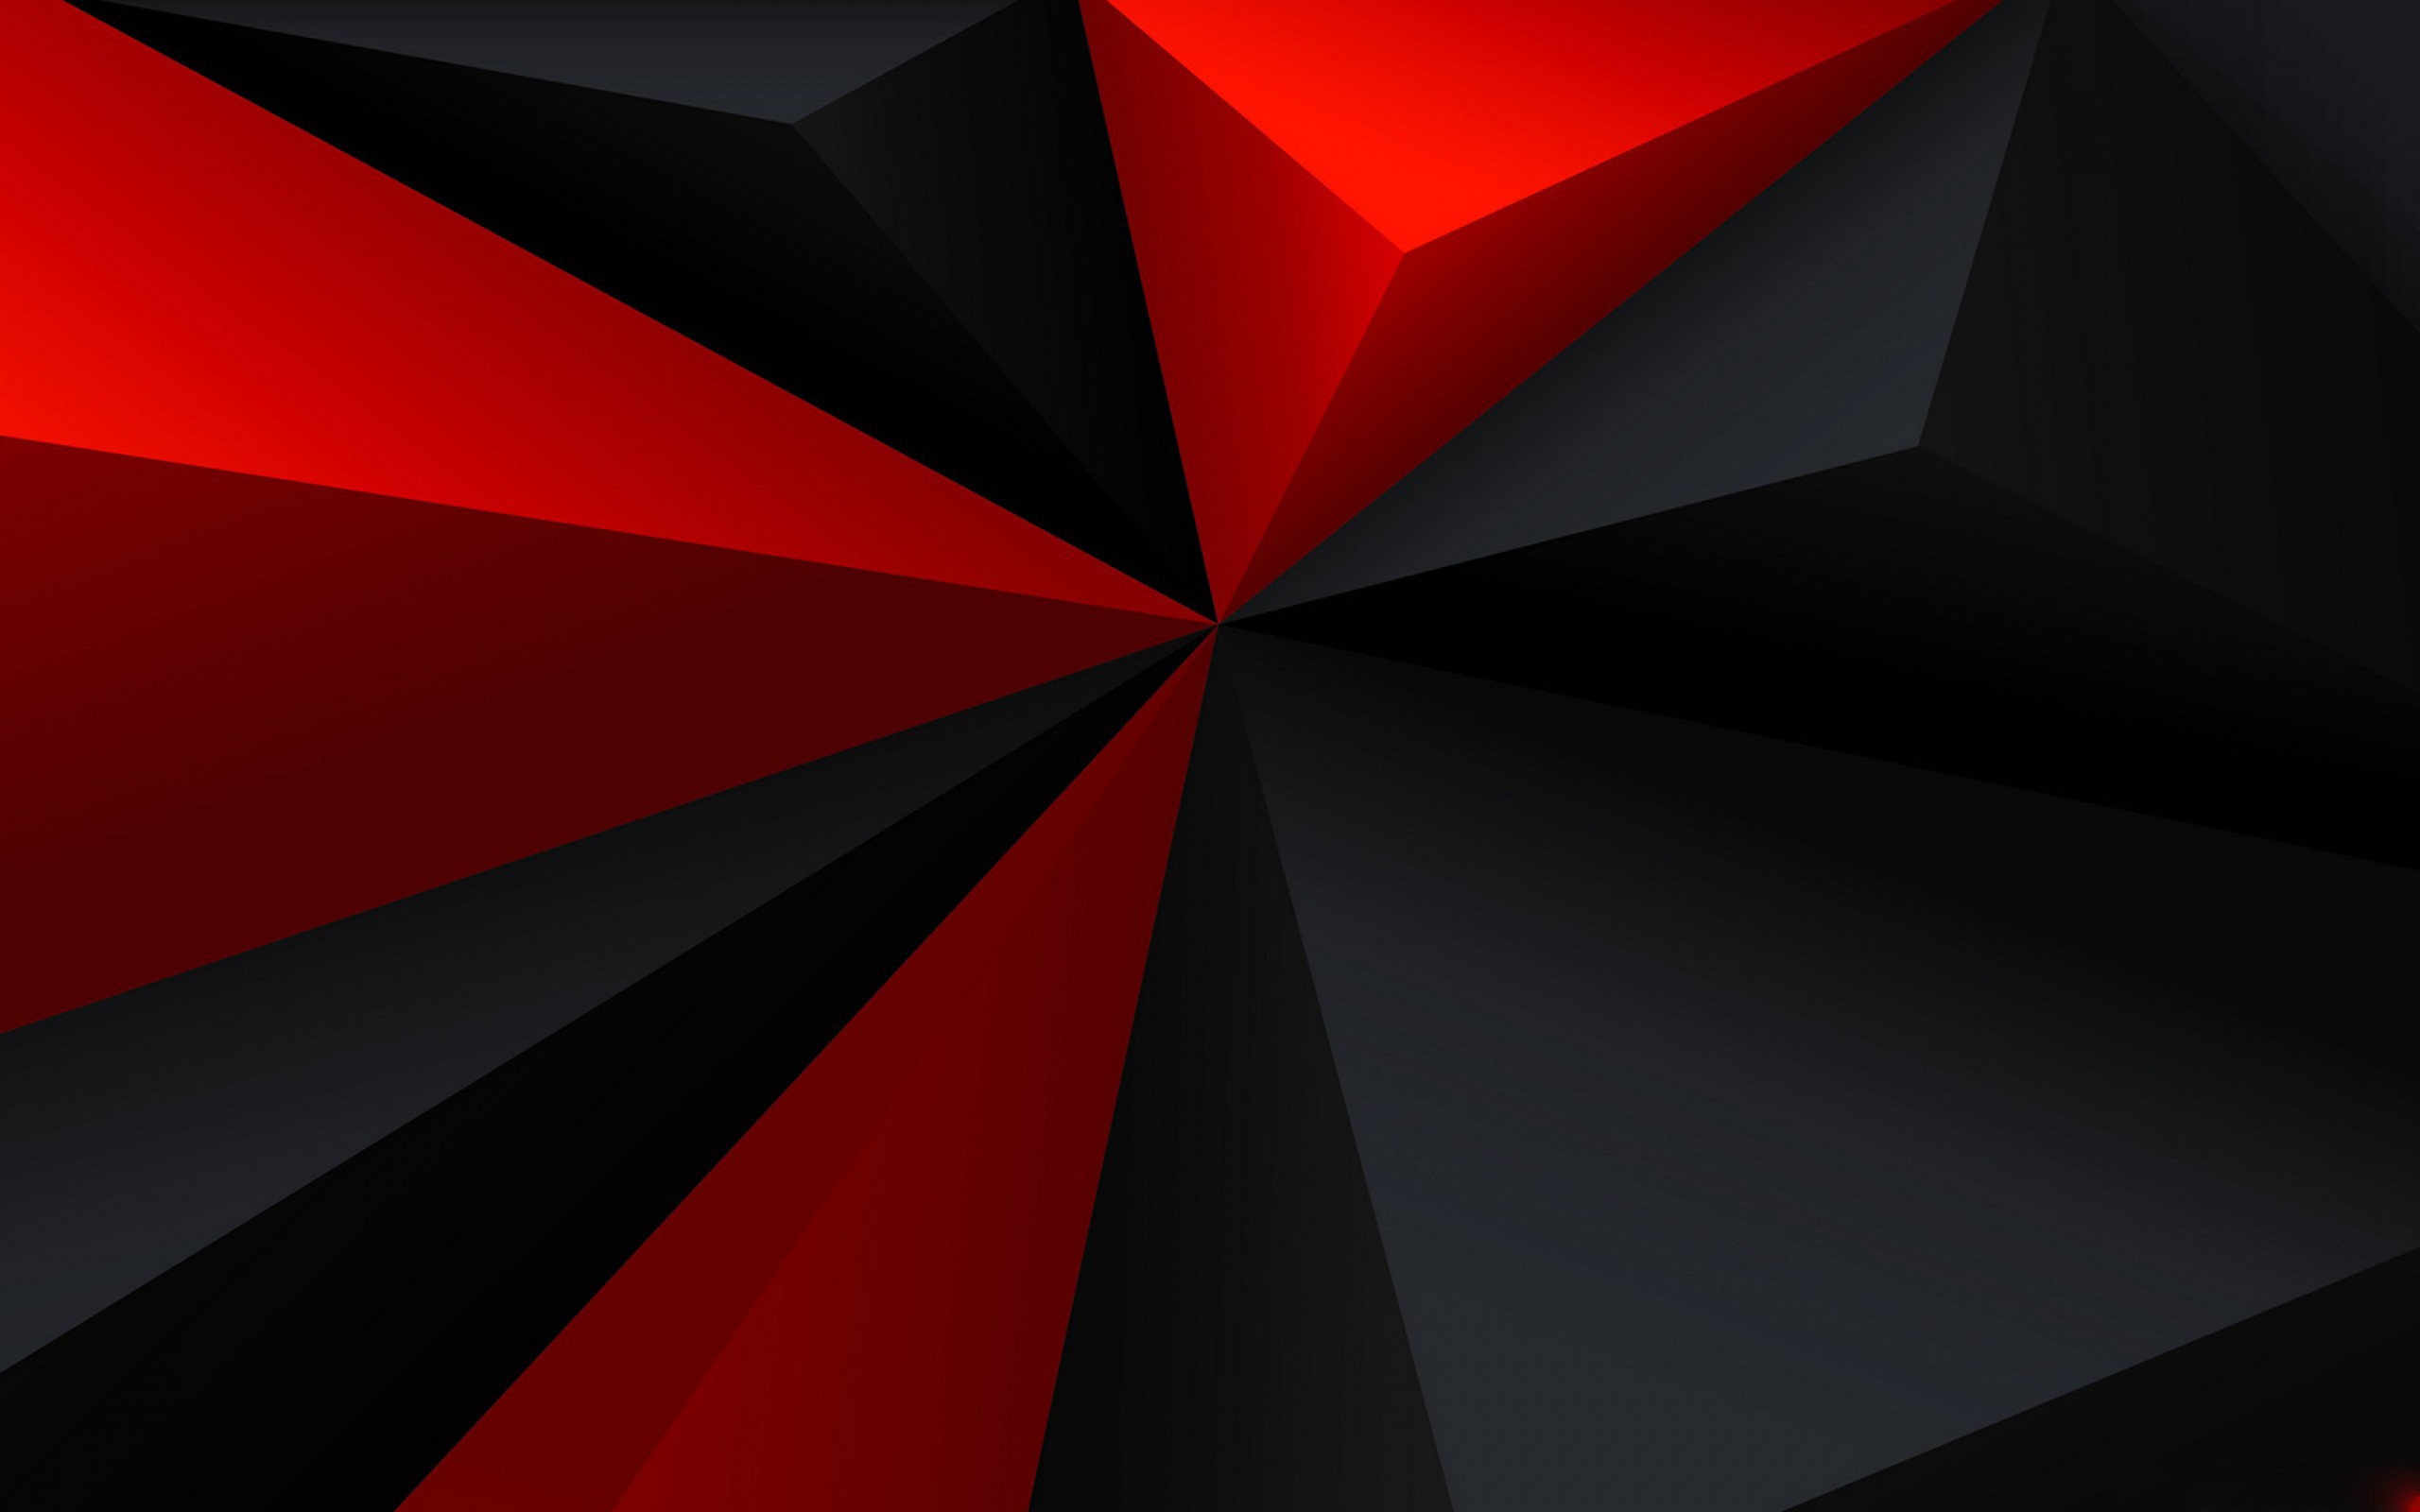 hd 4k background wallpapers amd collection backgrounds desktop radeon cool resolution colors